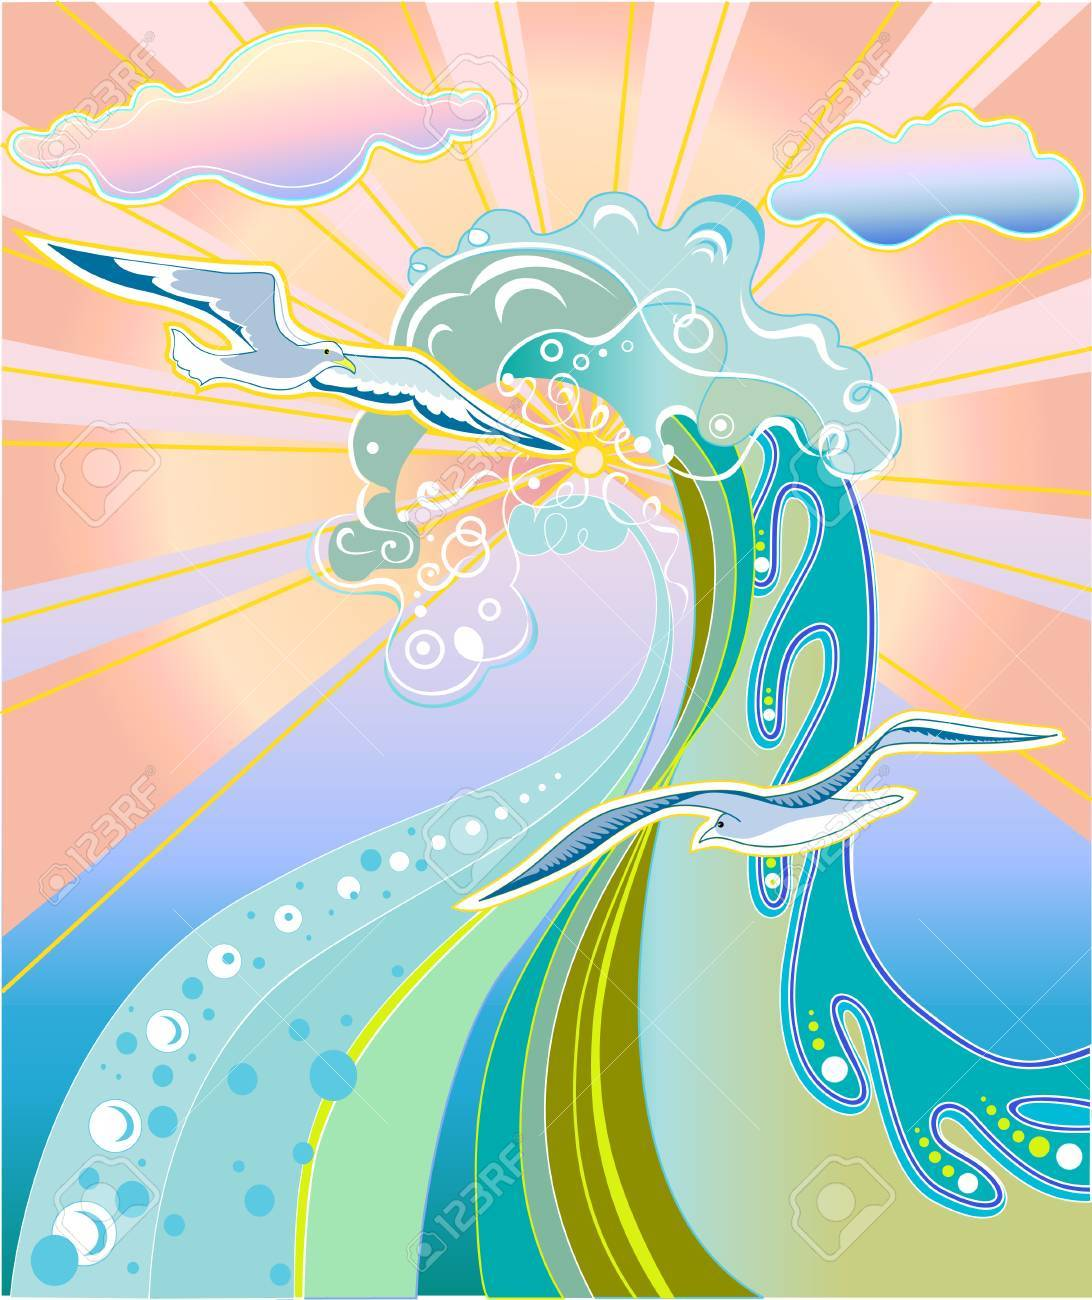 Vector illustration of  summer concept with waves, birds and sunshine. Stock Vector - 4002697